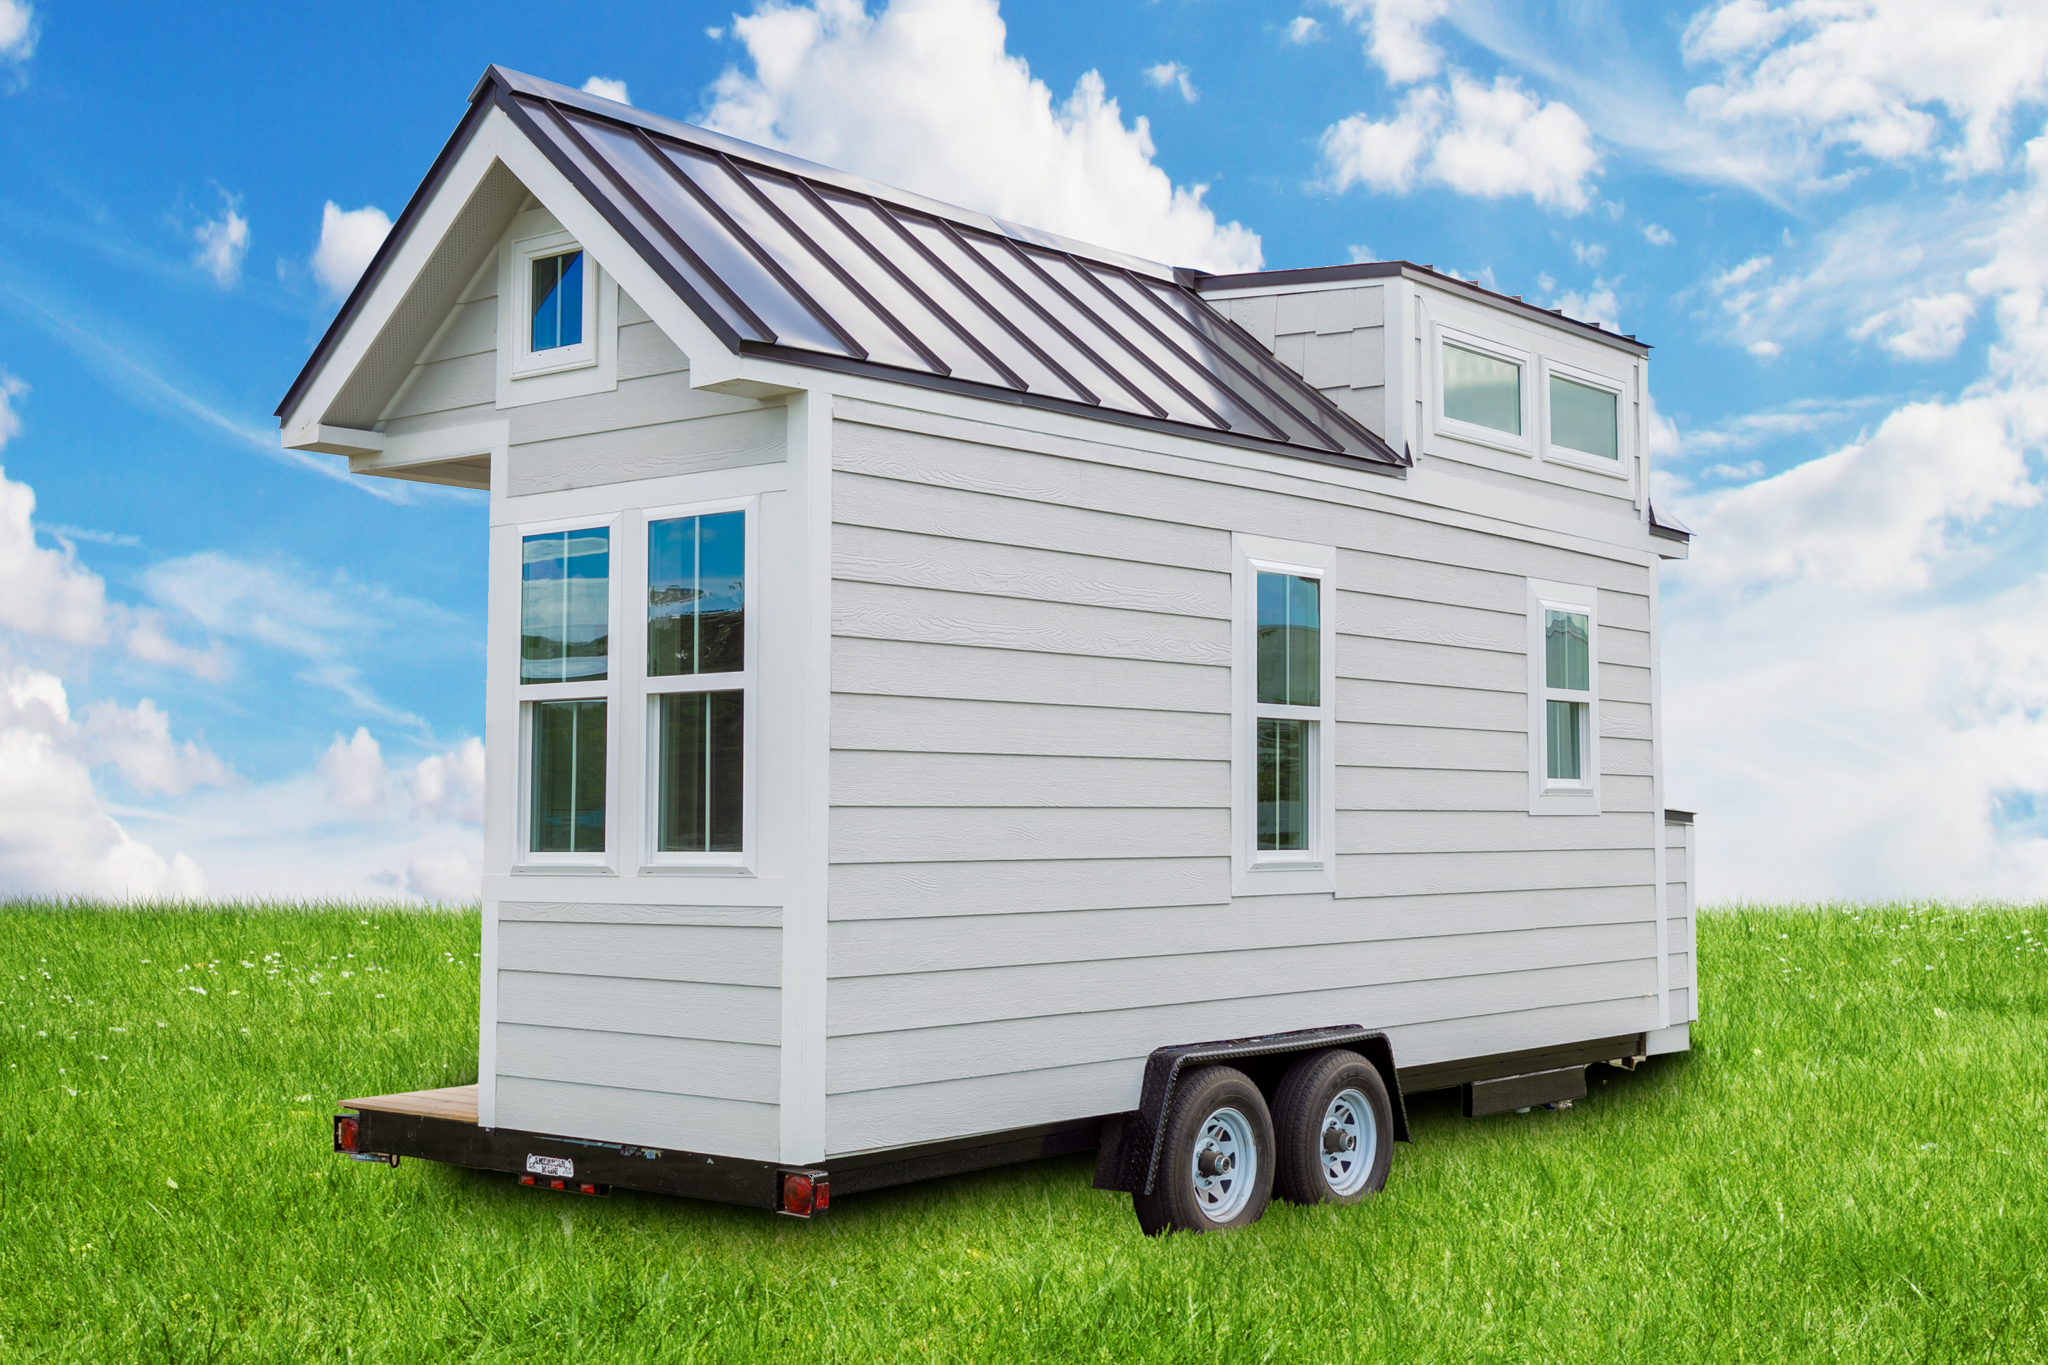 What features are most important in a tiny home community?